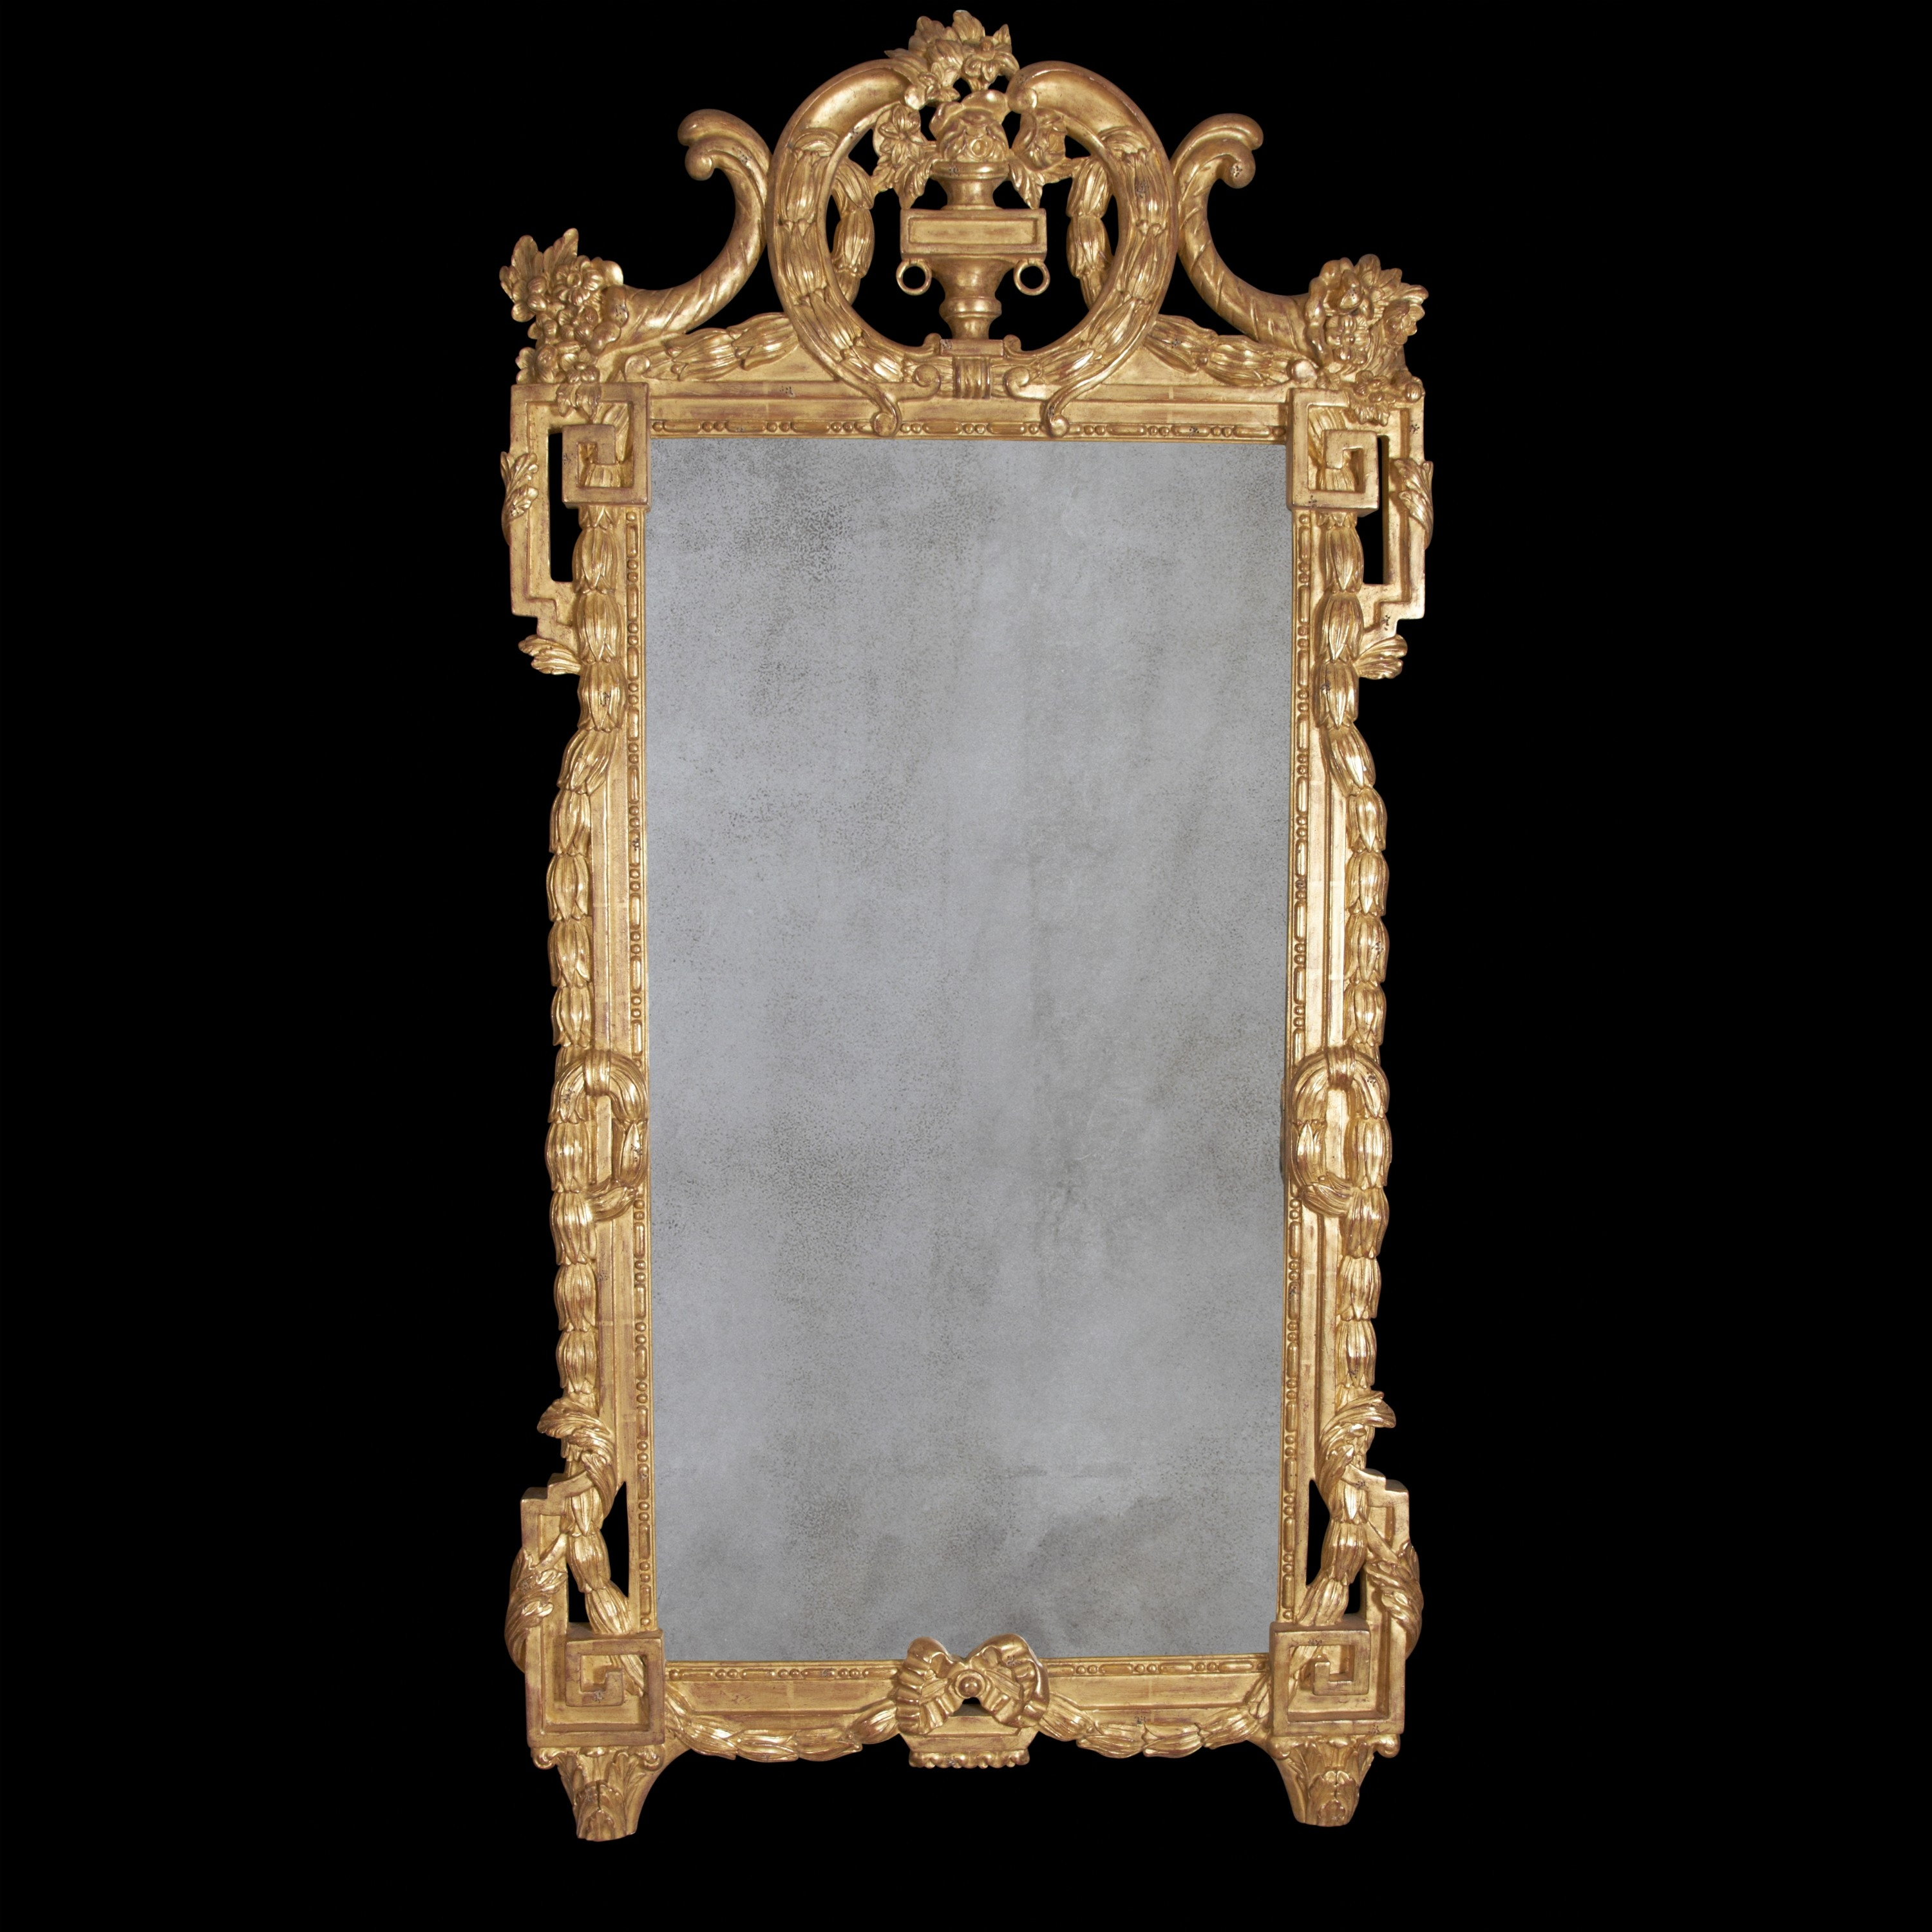 Home Decor Fascinating Antique Mirror Images Design Inspirations Regarding Old Fashioned Mirrors (Image 9 of 15)